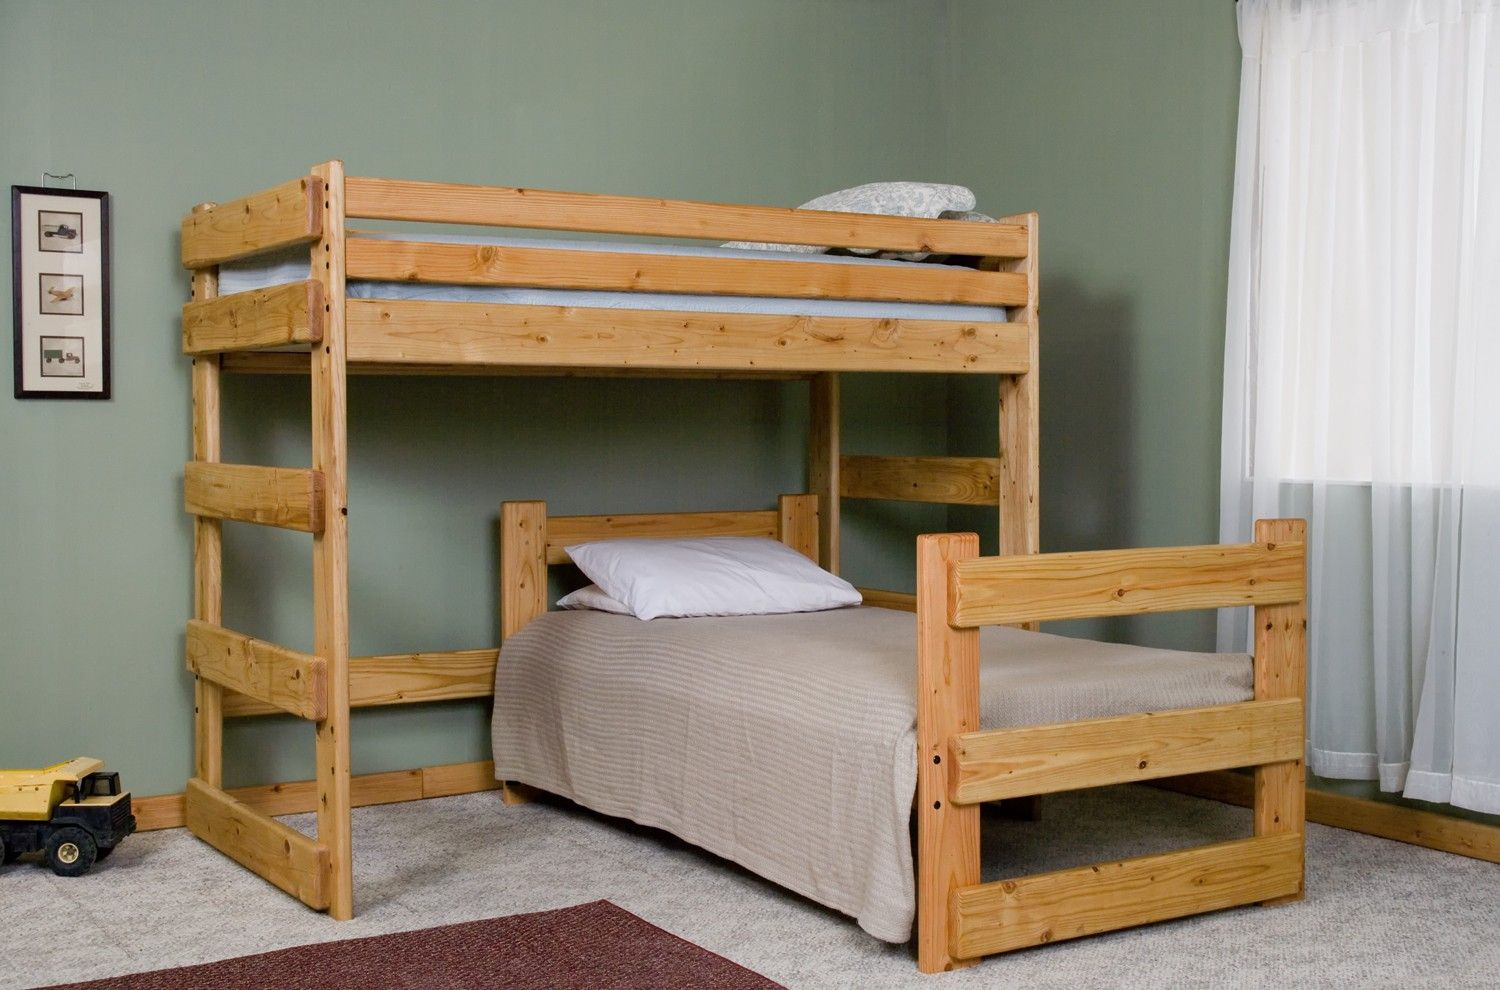 t shaped bunk beds Google Search DIY projects